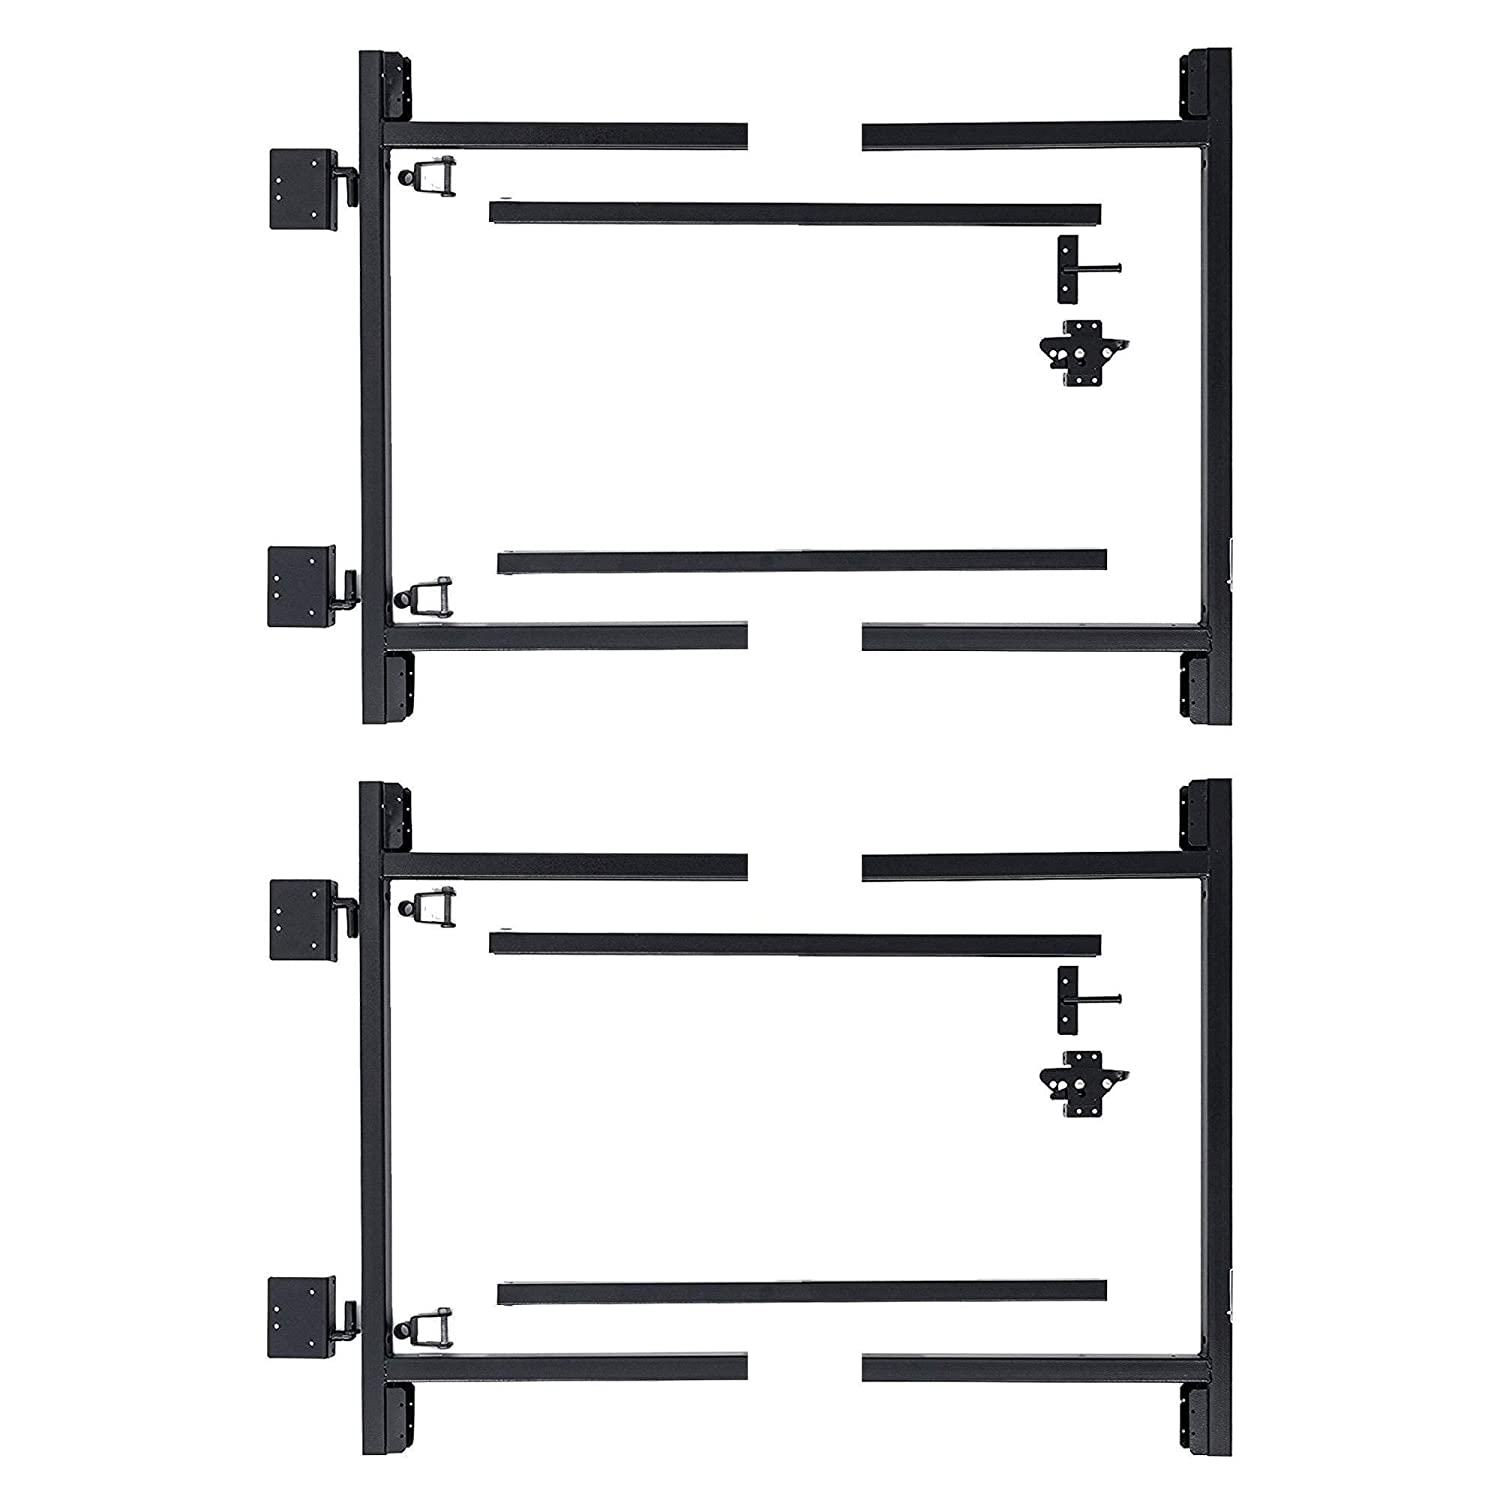 Adjust-A-Gate Steel Frame Gate Building Kit, 36 -60 Wide Up to 4 High 2 Pack